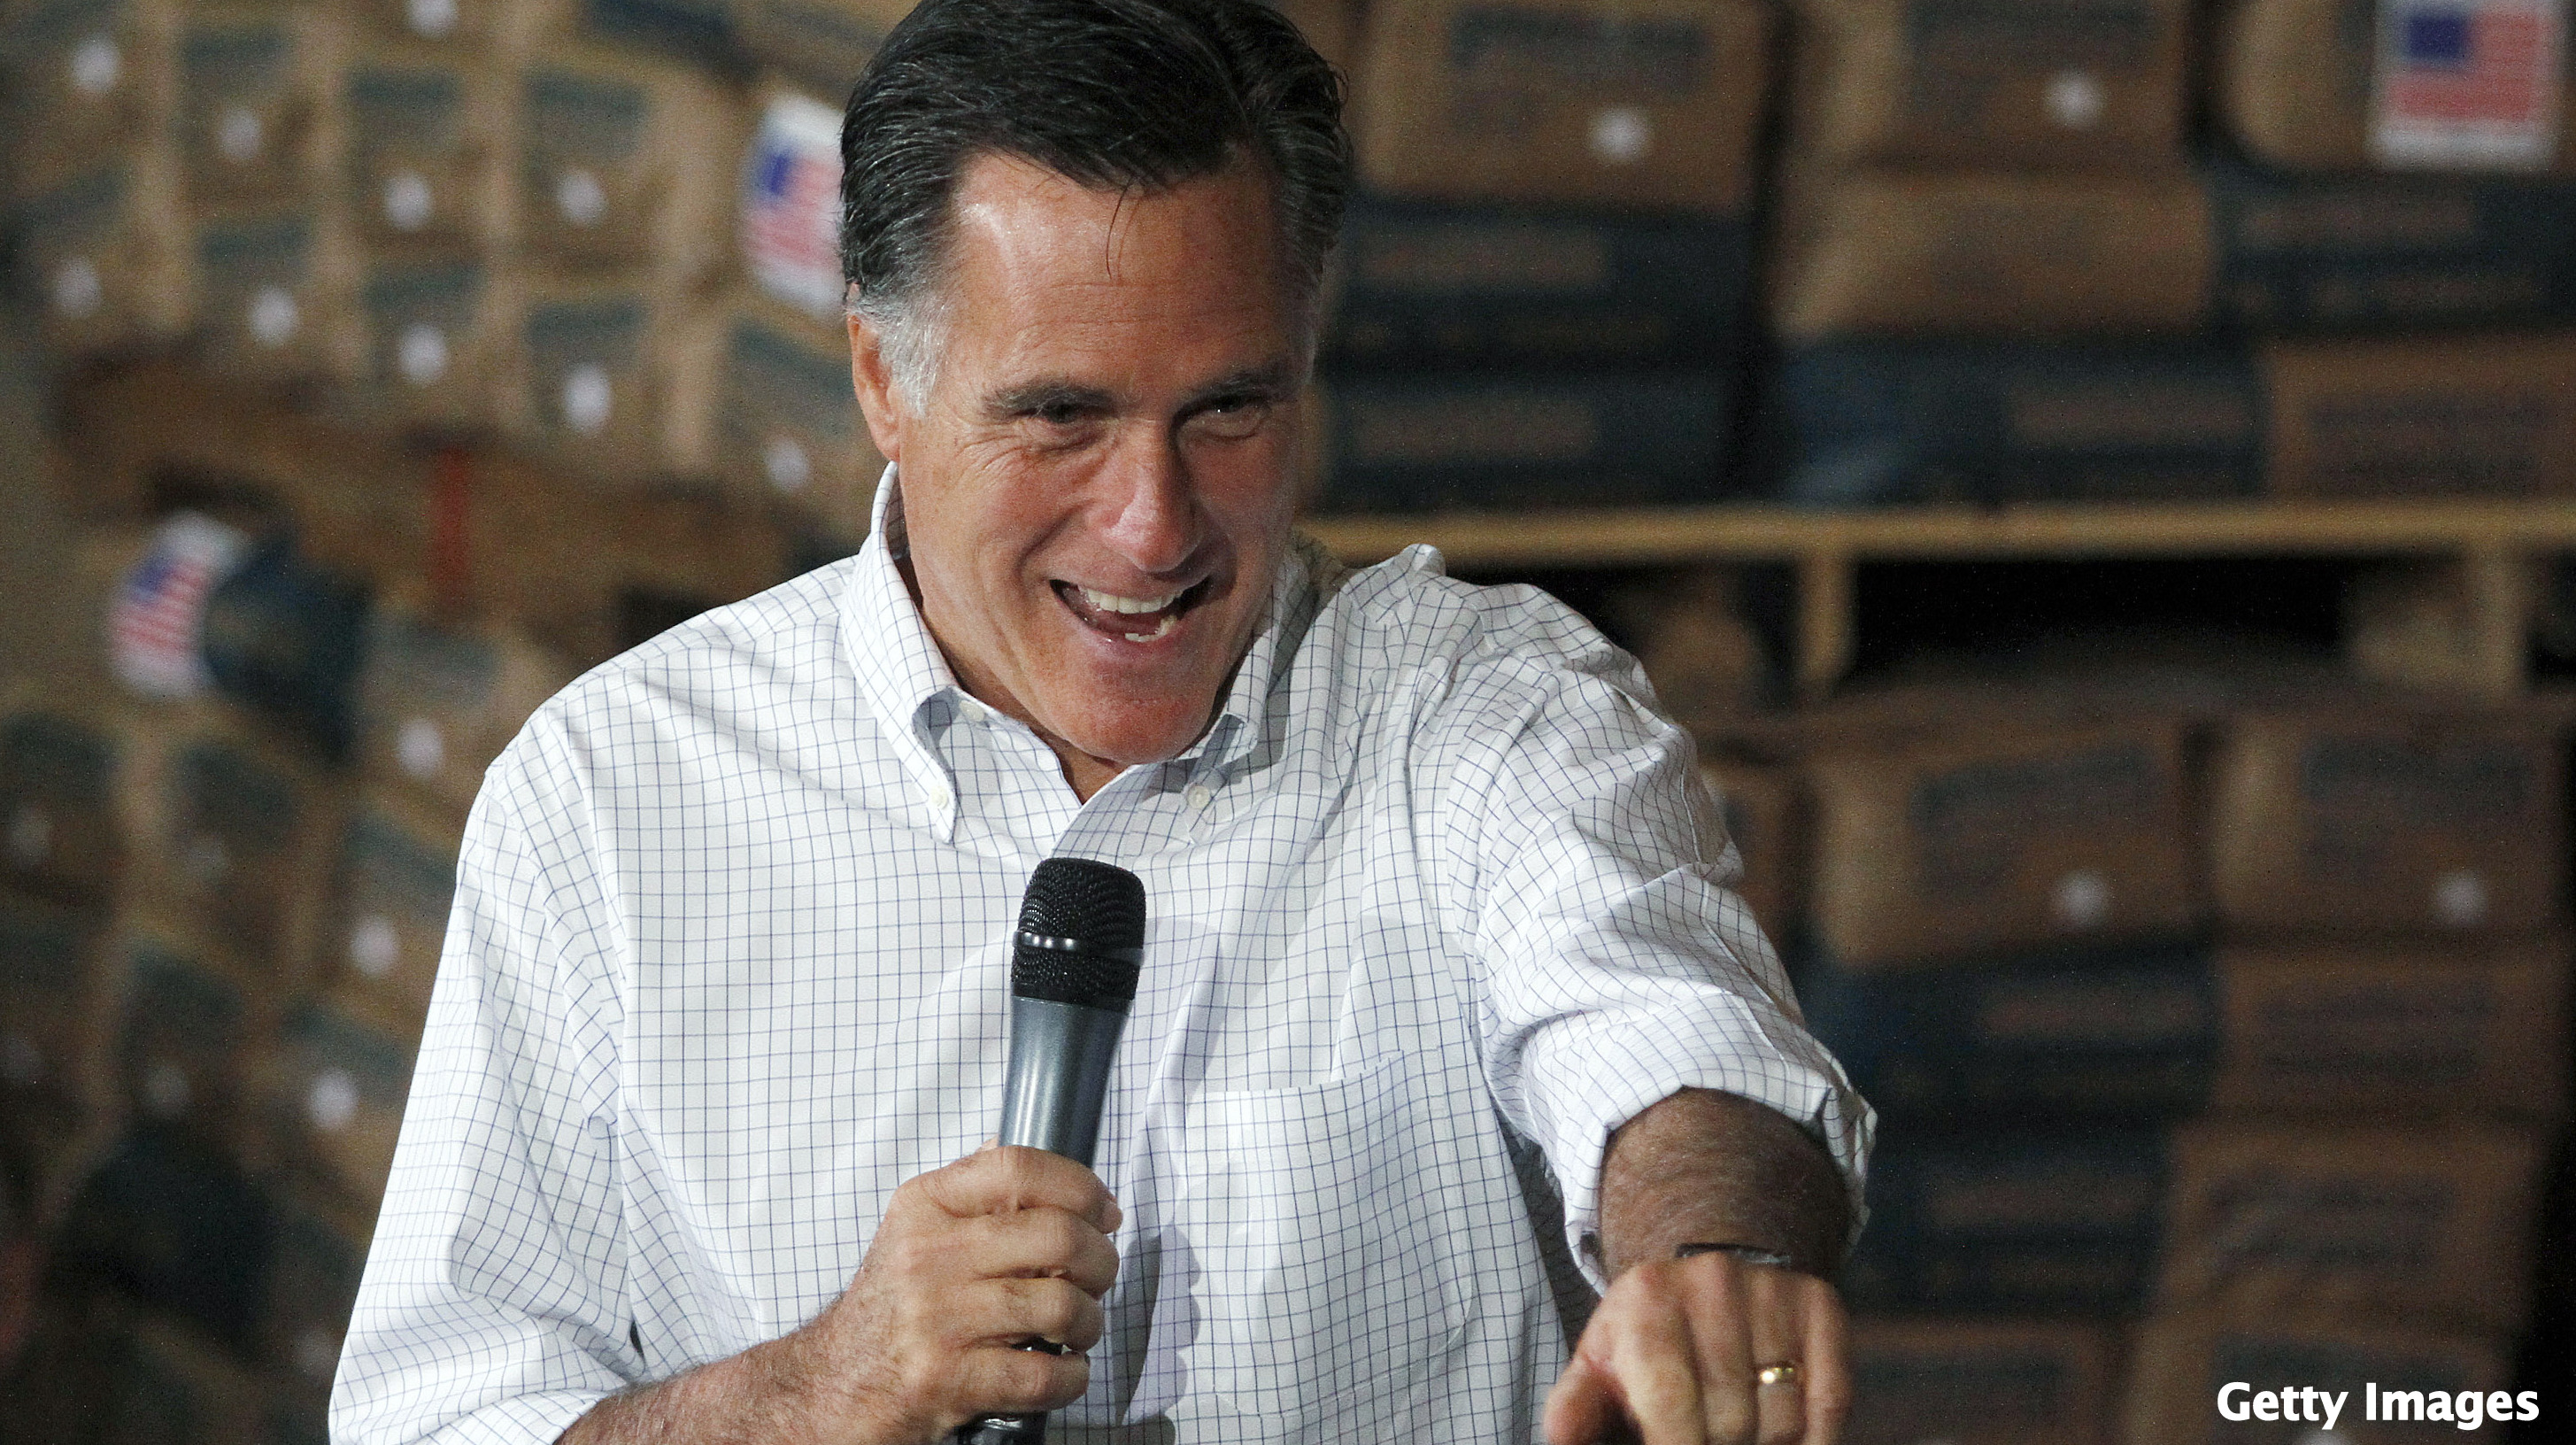 Romney wins Nebraska primary, CNN projects